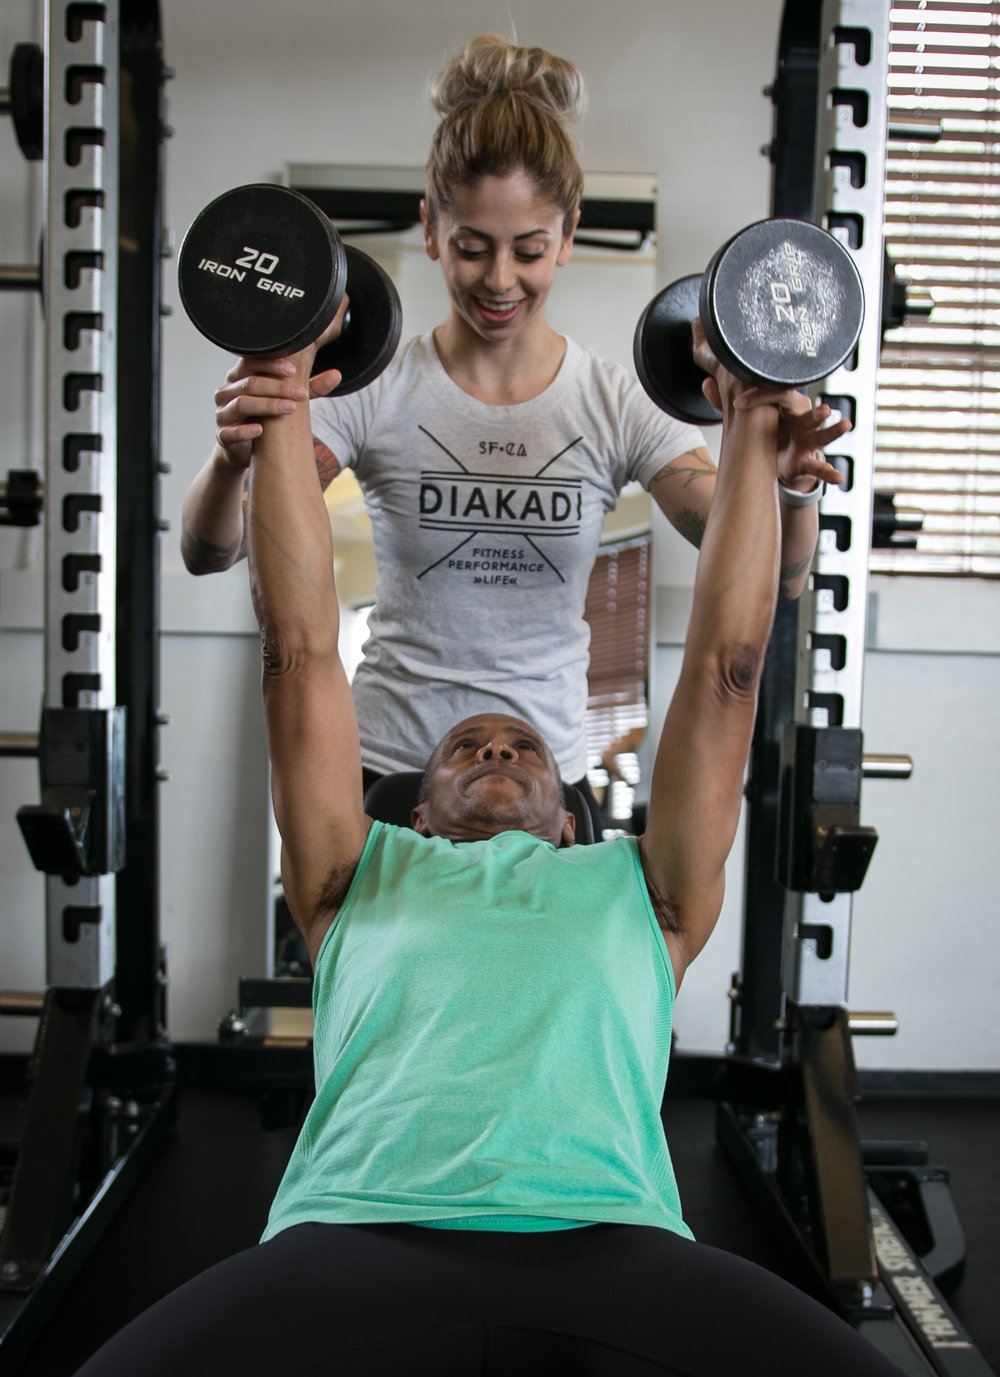 DIAKADI Trainer Nicolette Amarillas spotted chest press.jpg